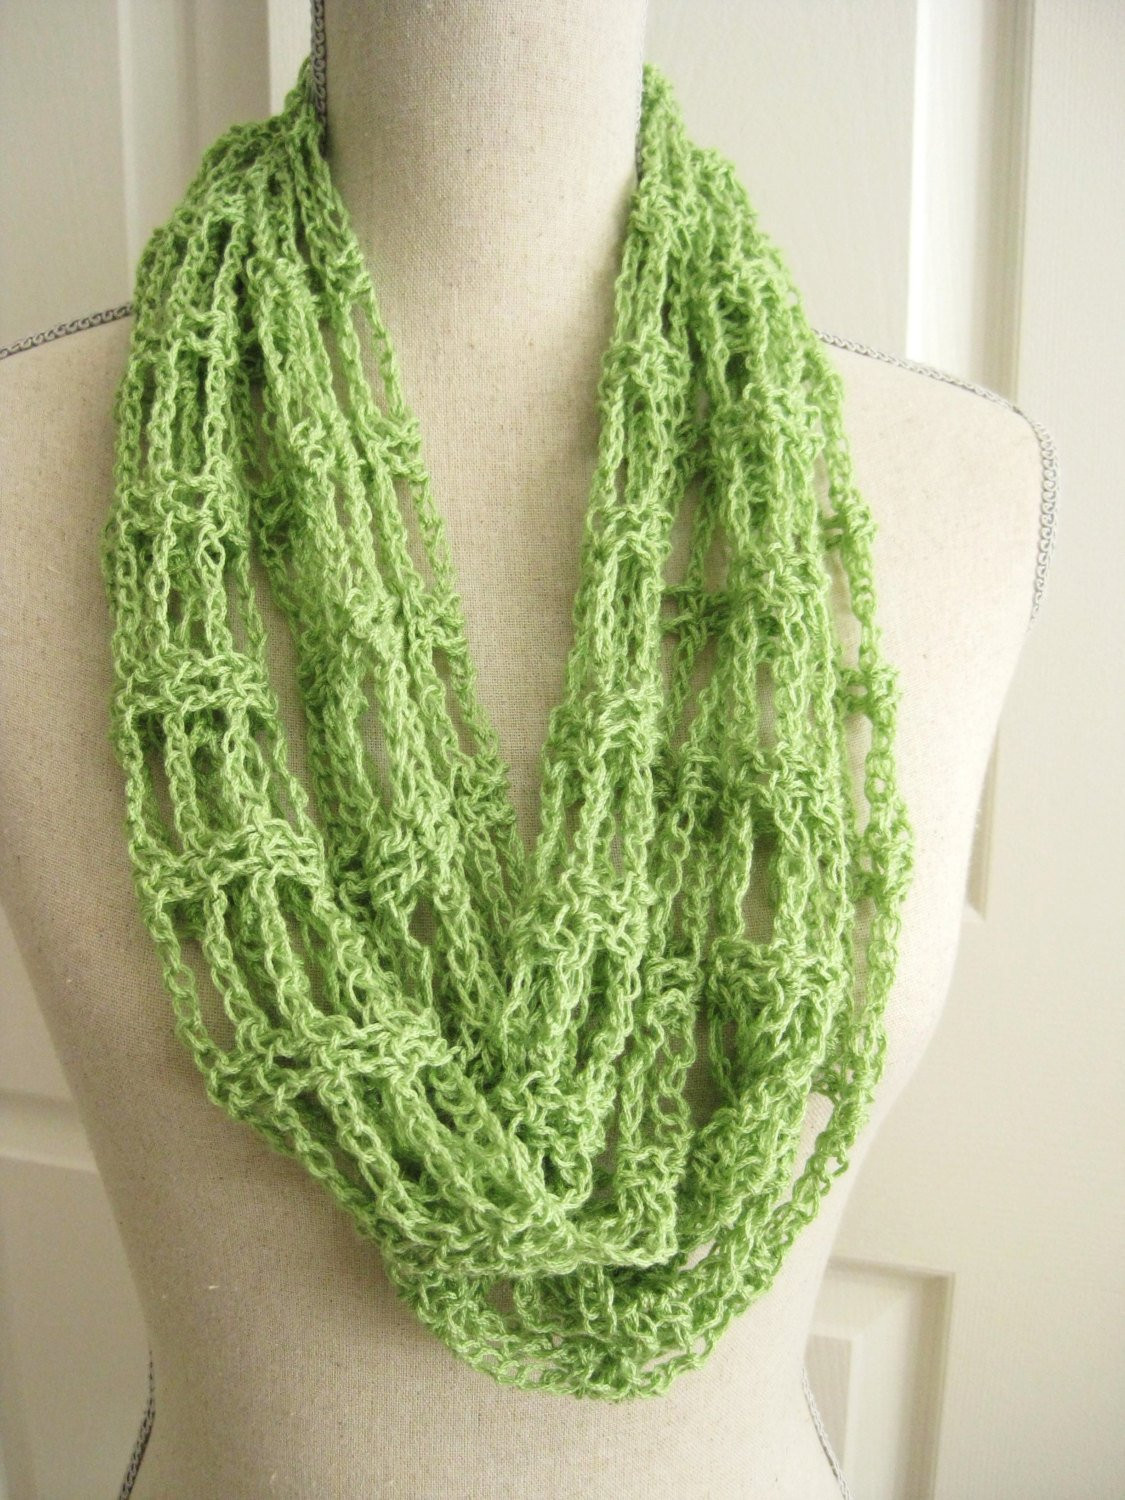 Lacy Crochet Scarf Inspirational Lacy Cowl Scarf Crocheted Spring Green Crochet Circle Scarf Of Perfect 44 Ideas Lacy Crochet Scarf